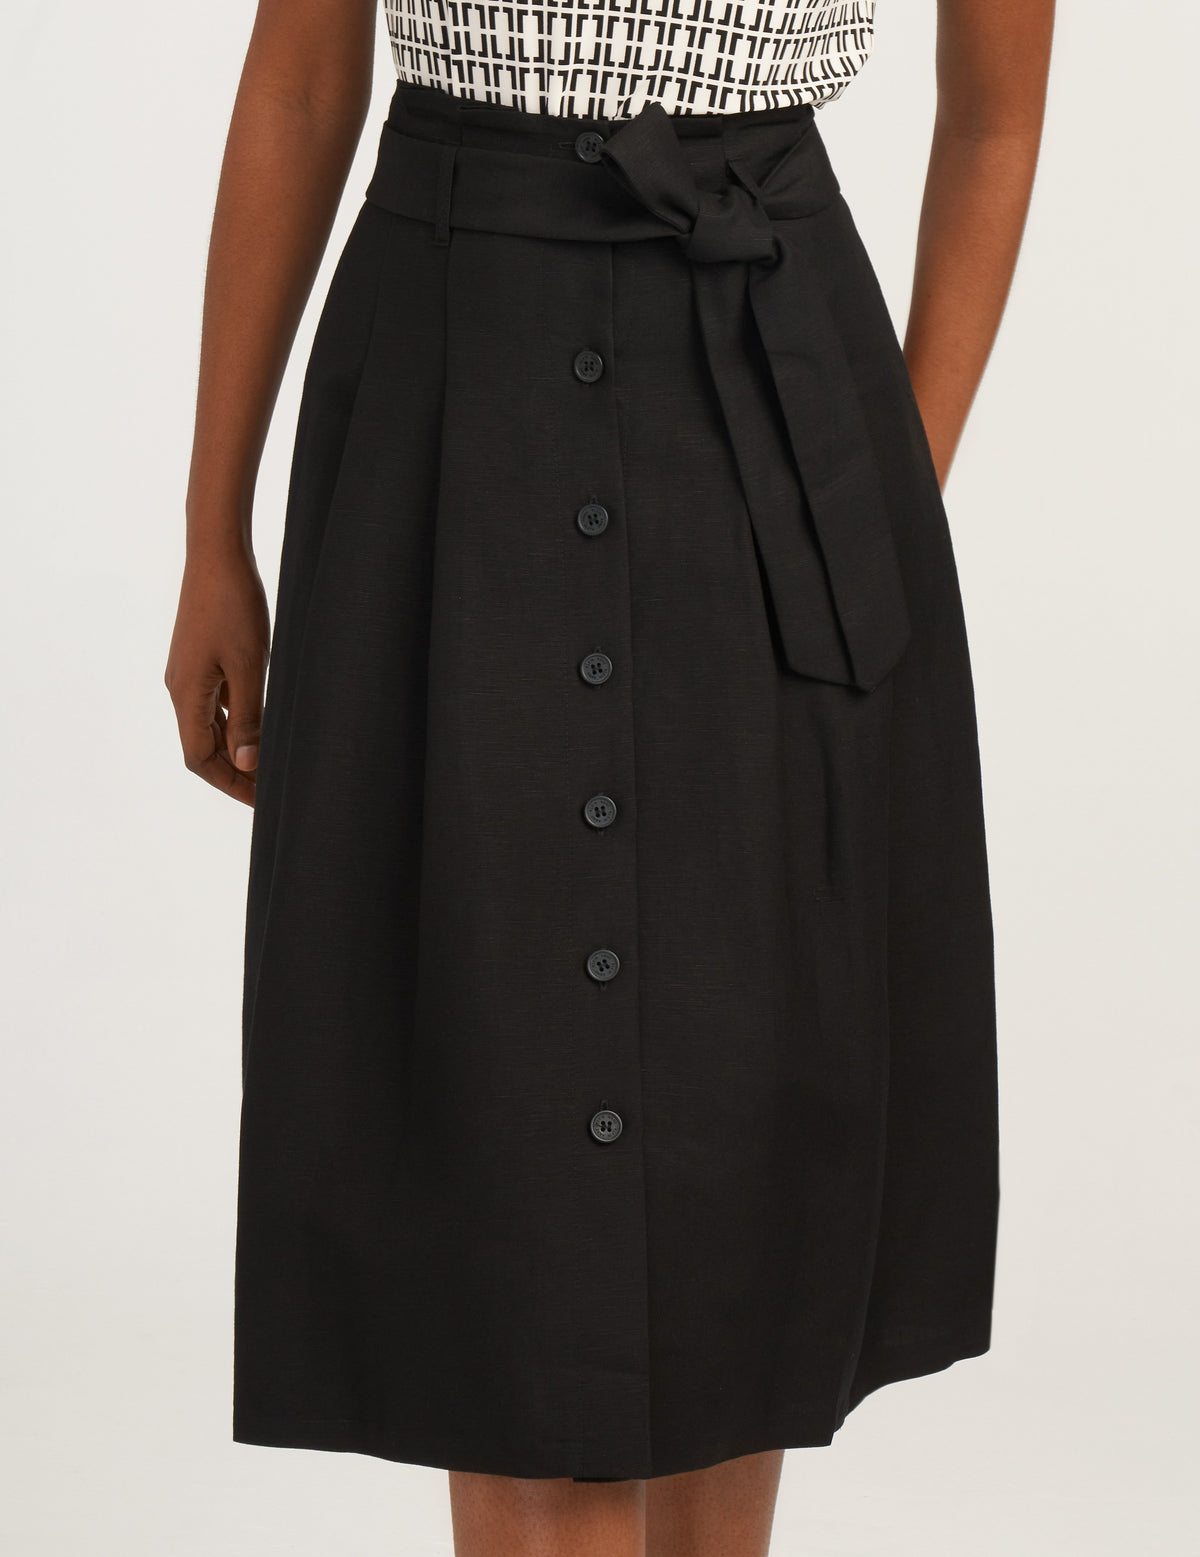 Anne Klein Black Linen Button Up Skirt With Belt